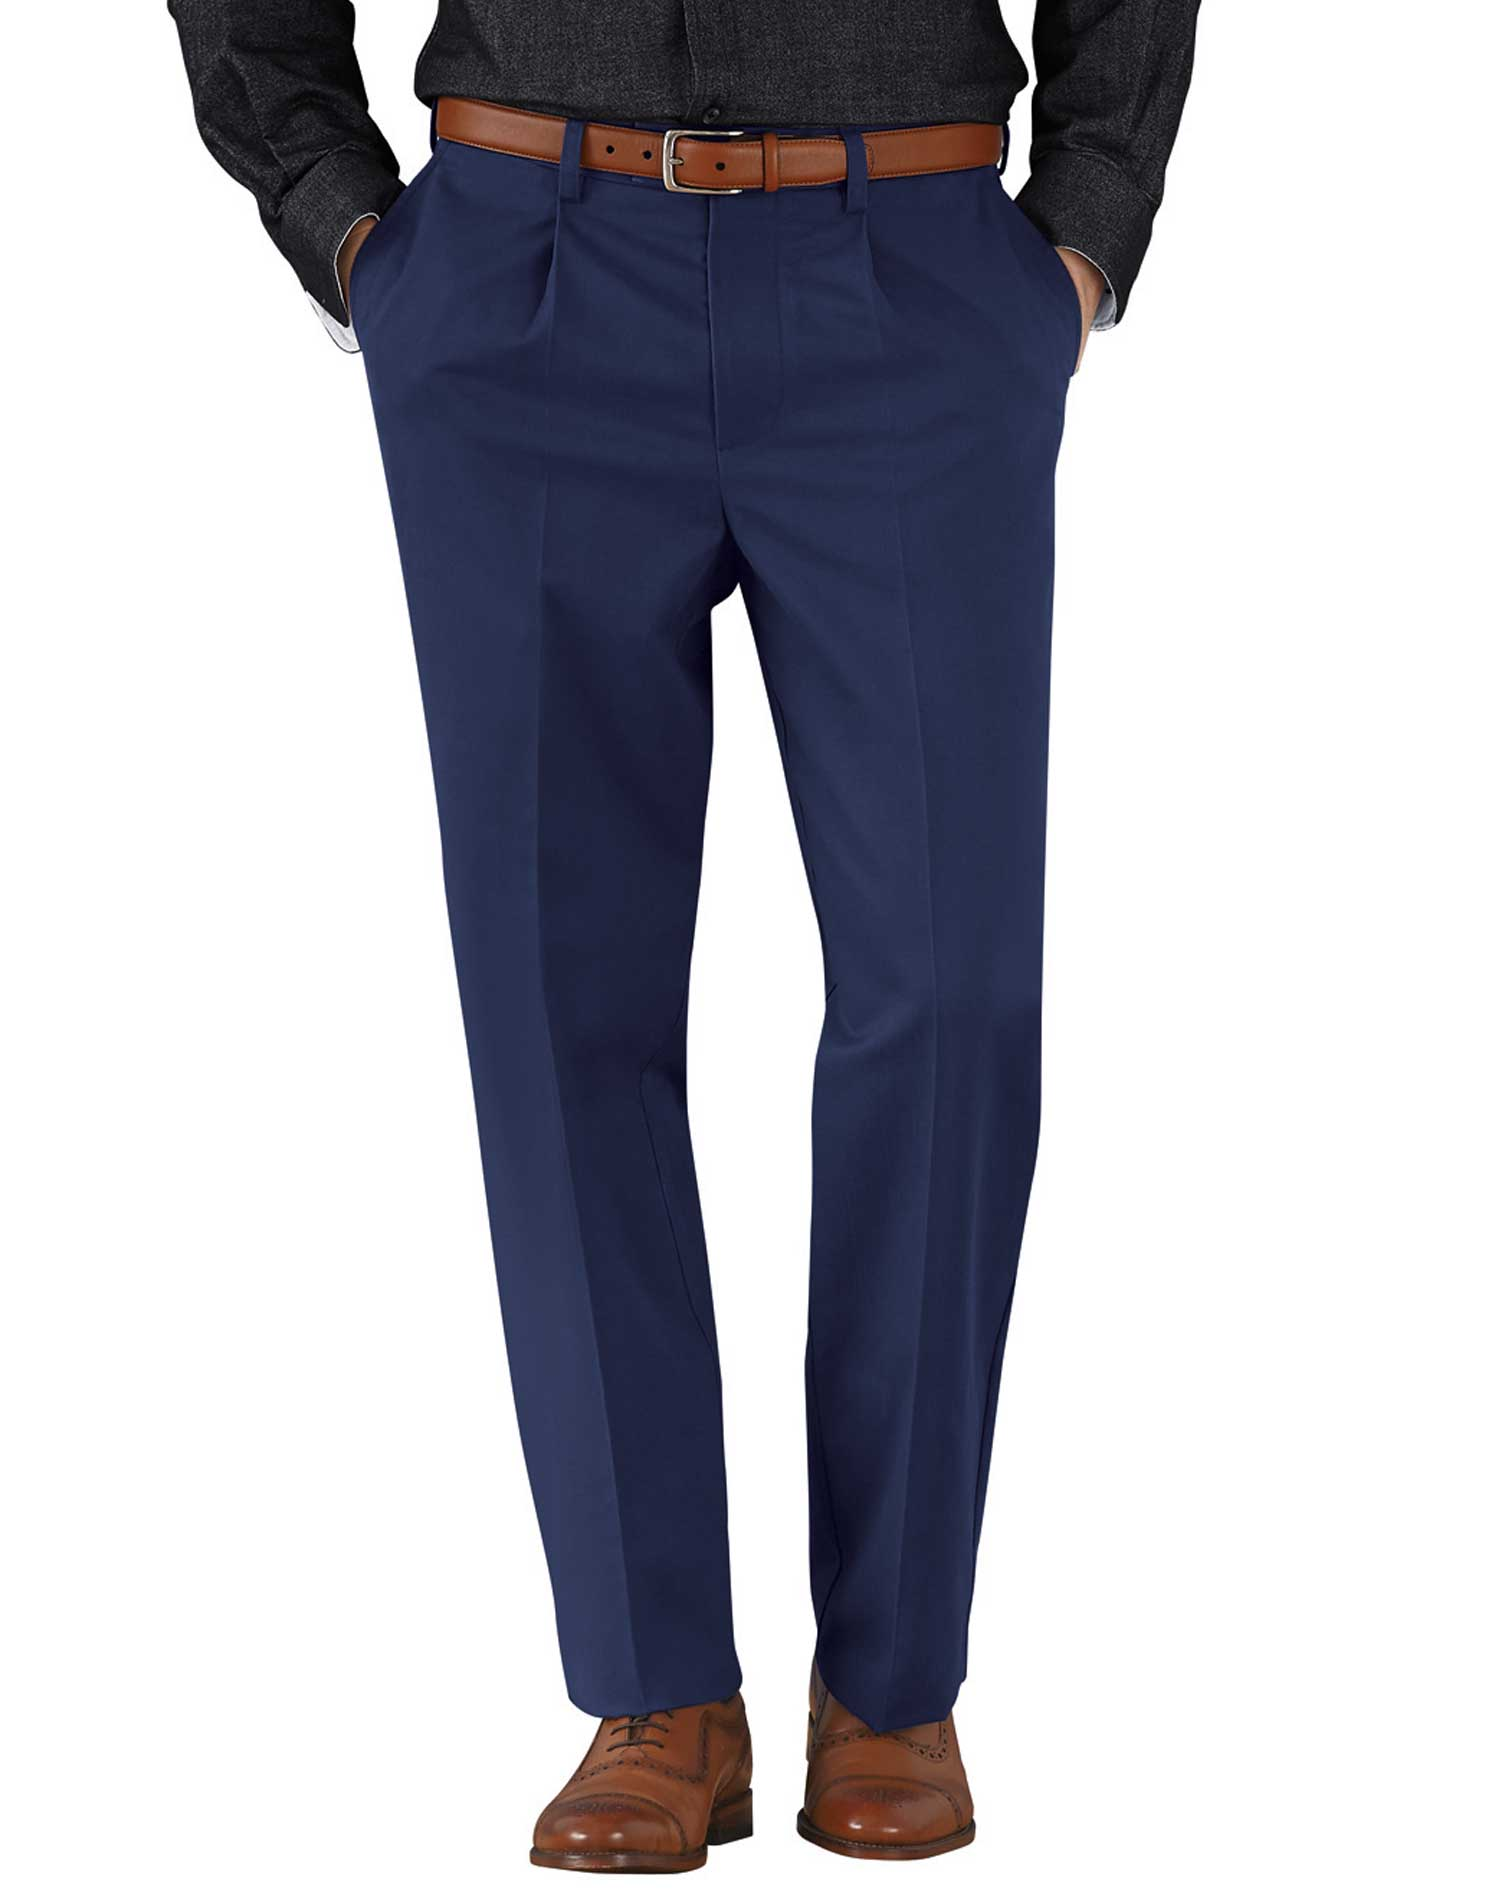 Marine Blue Classic Fit Single Pleat Non-Iron Cotton Chino Trousers Size W36 L30 by Charles Tyrwhitt